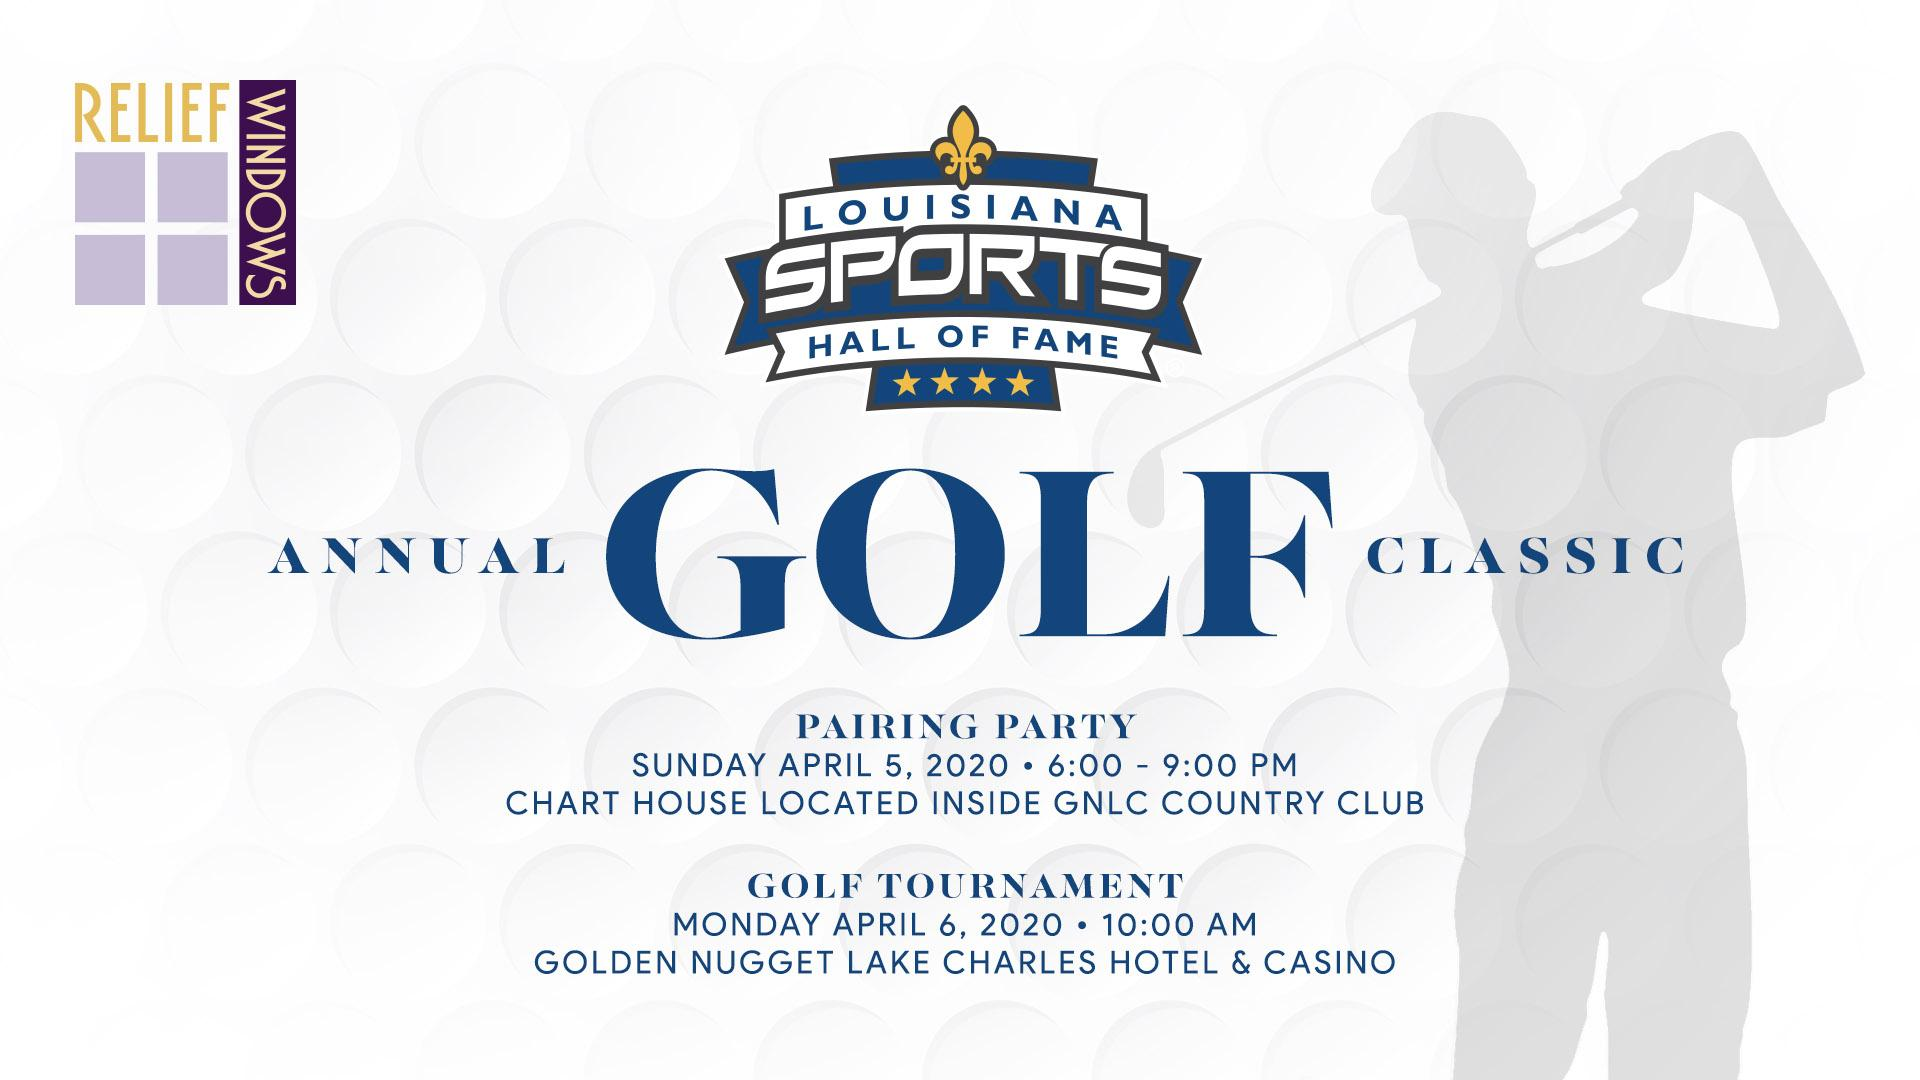 LSHOF Annual Golf Classic presented by Relief Windows